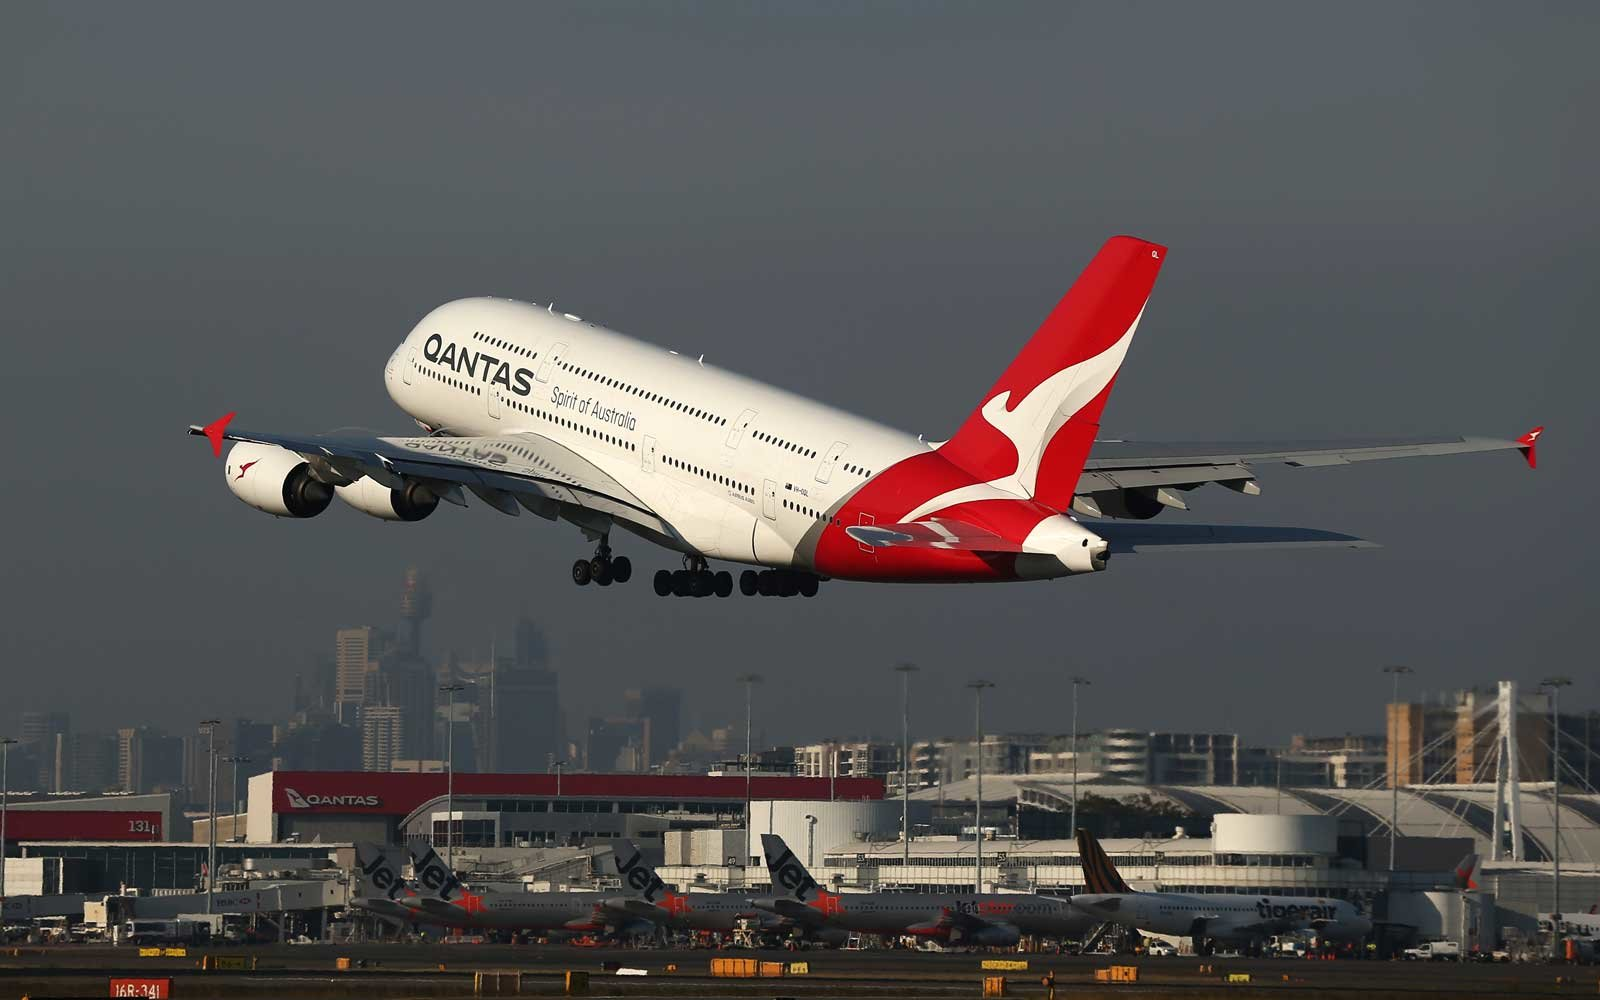 A non-stop 19-hour flight to Sydney has taken off from London